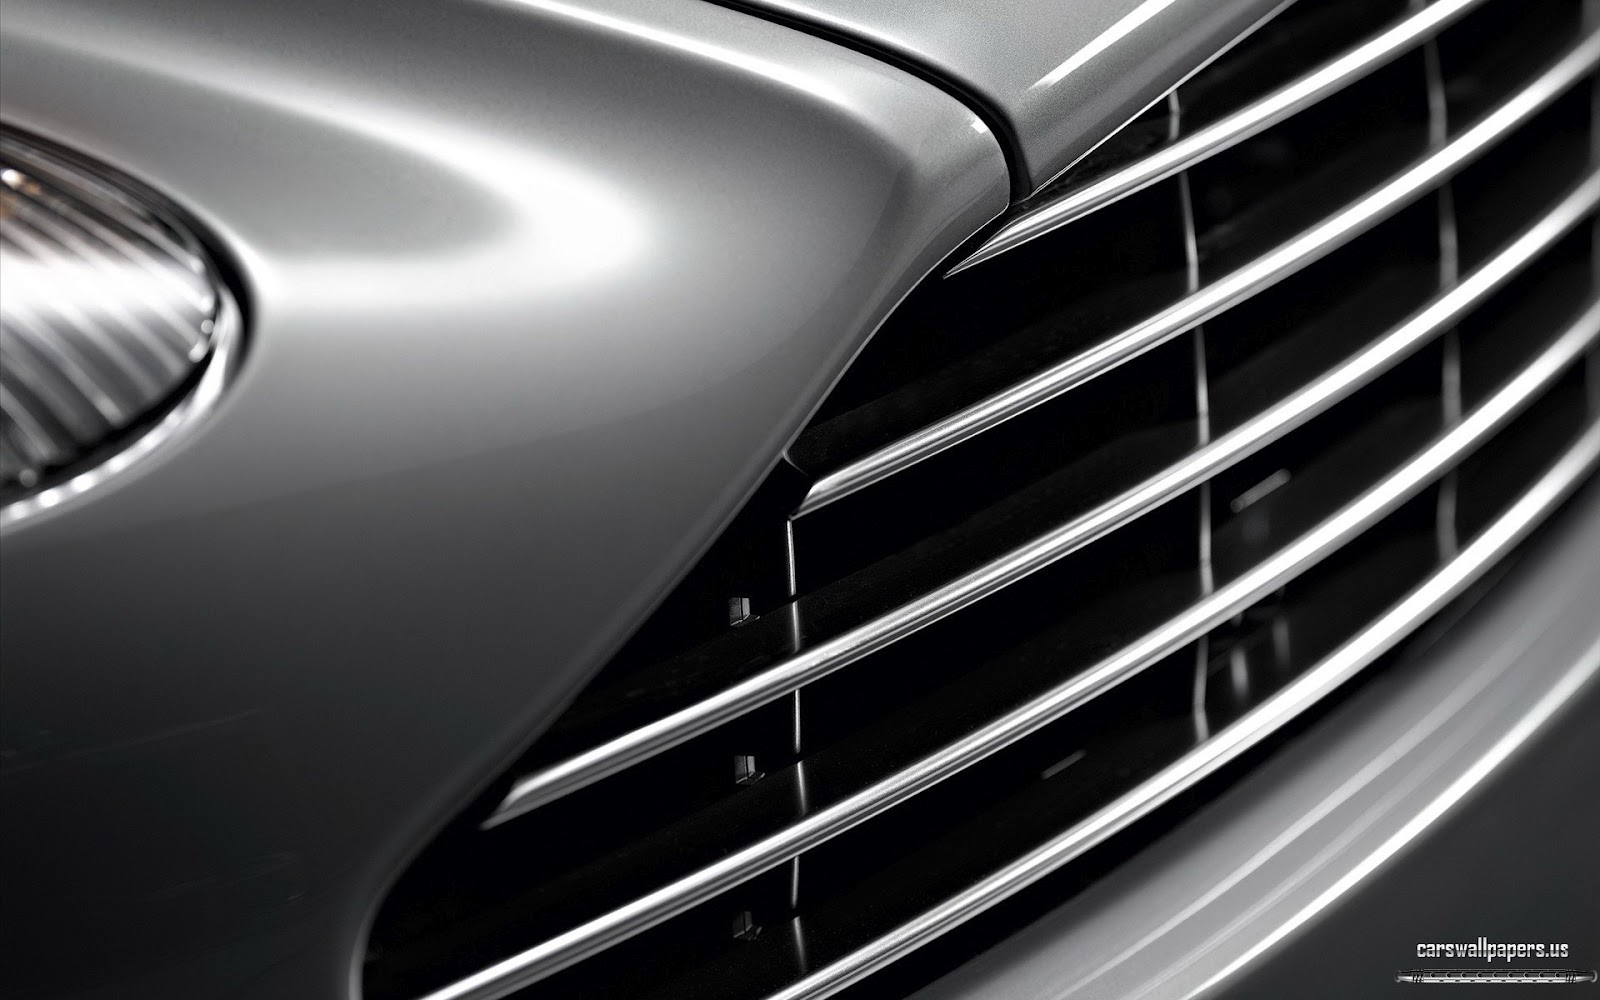 aston martin db9 front grille pics and aston martin db9 front grille